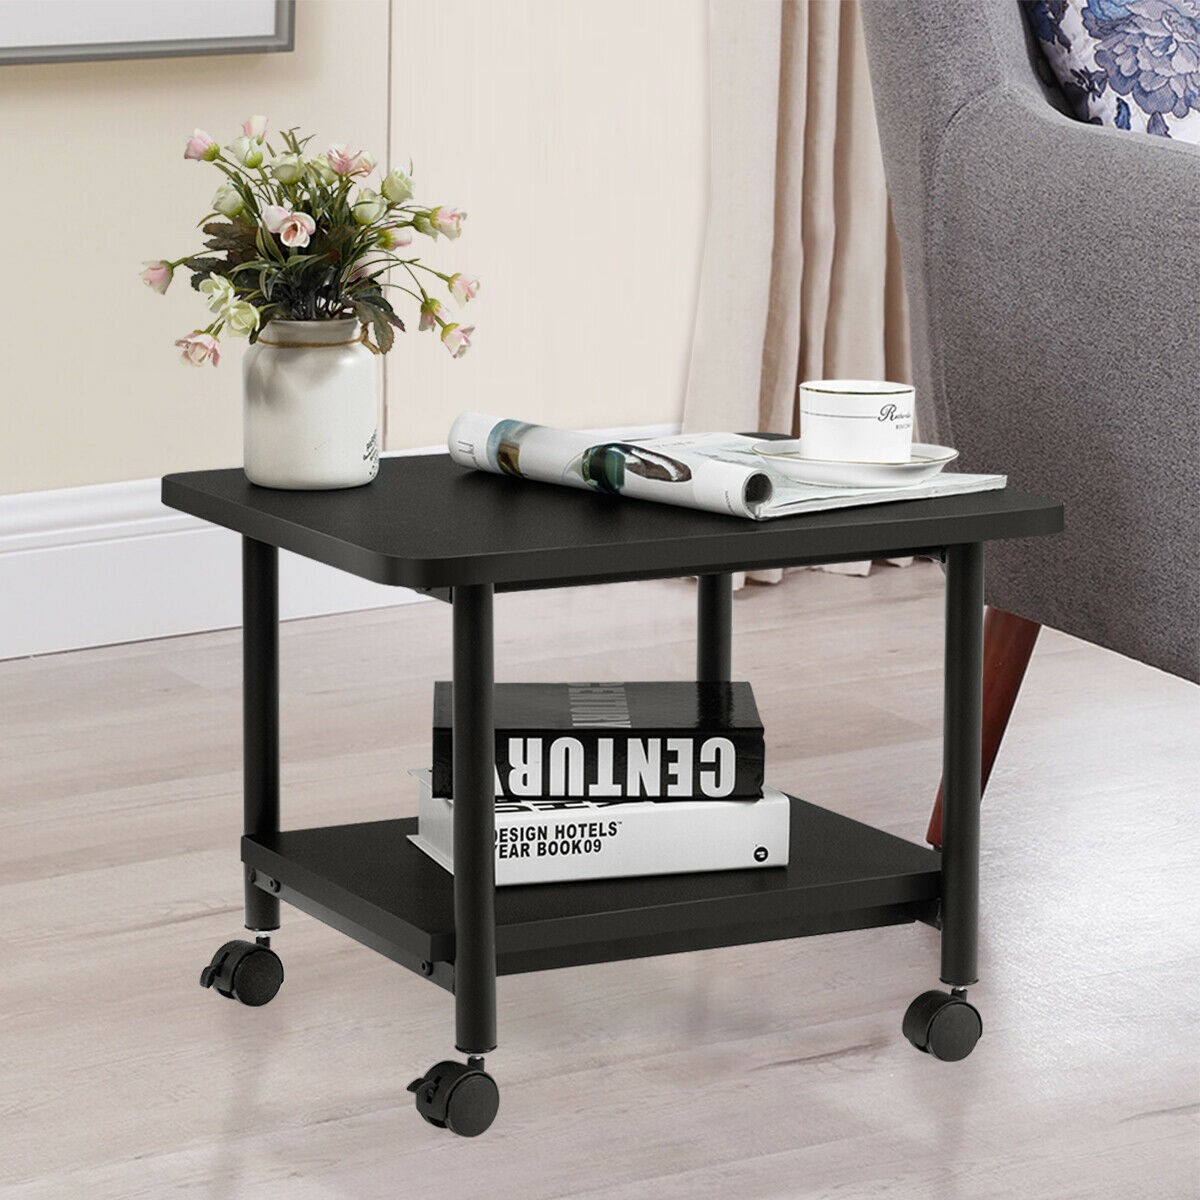 Under Desk Printer Stand With 360 Degree Swivel Casters Home Office 2 Tier Cart | eBay